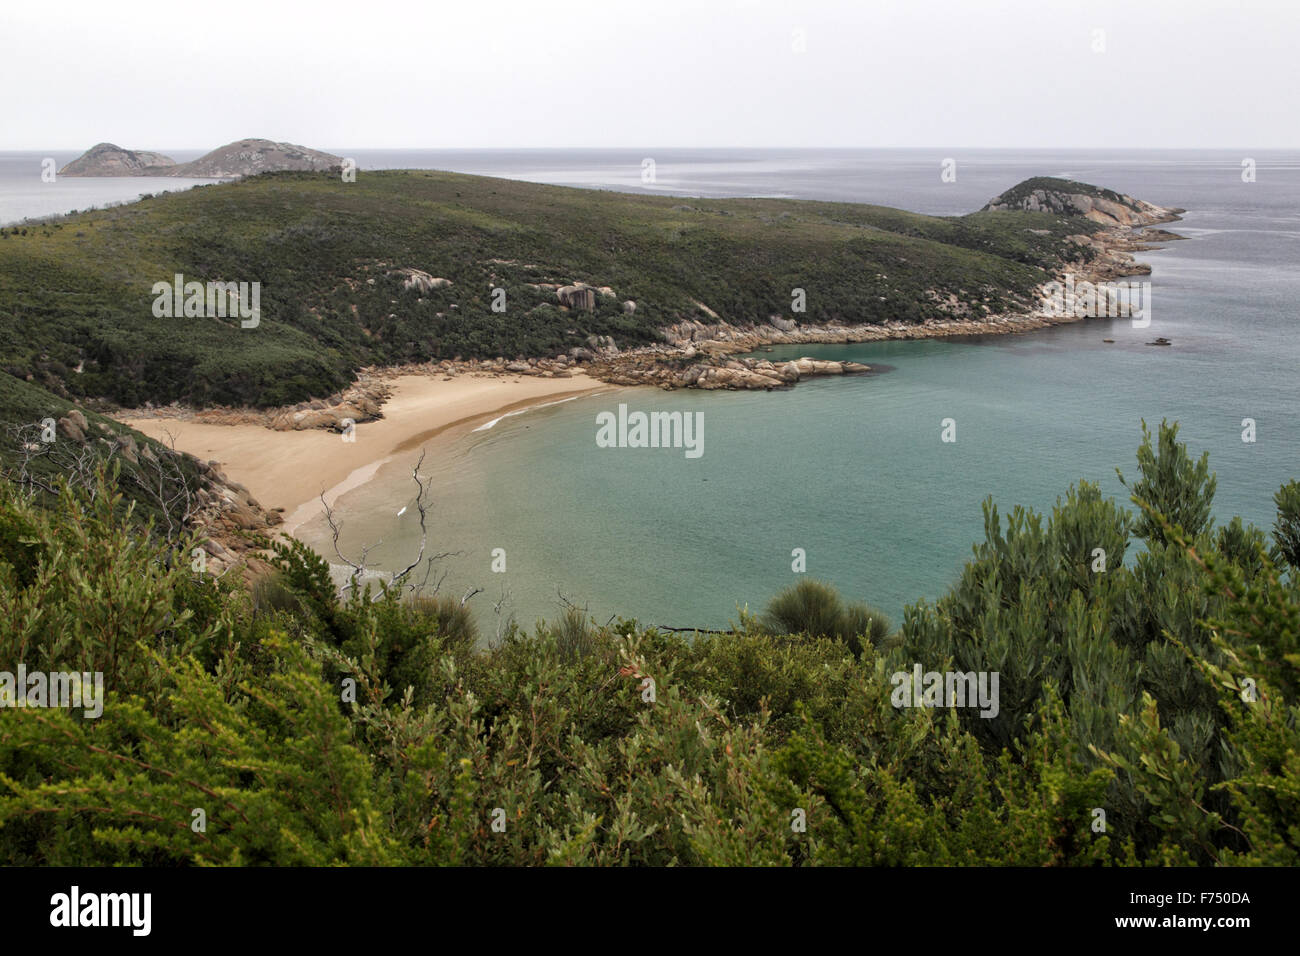 Coastal Landscape on the Tounge Point Track in the Wilsons Promontory National Park, Victoria, Australia. - Stock Image